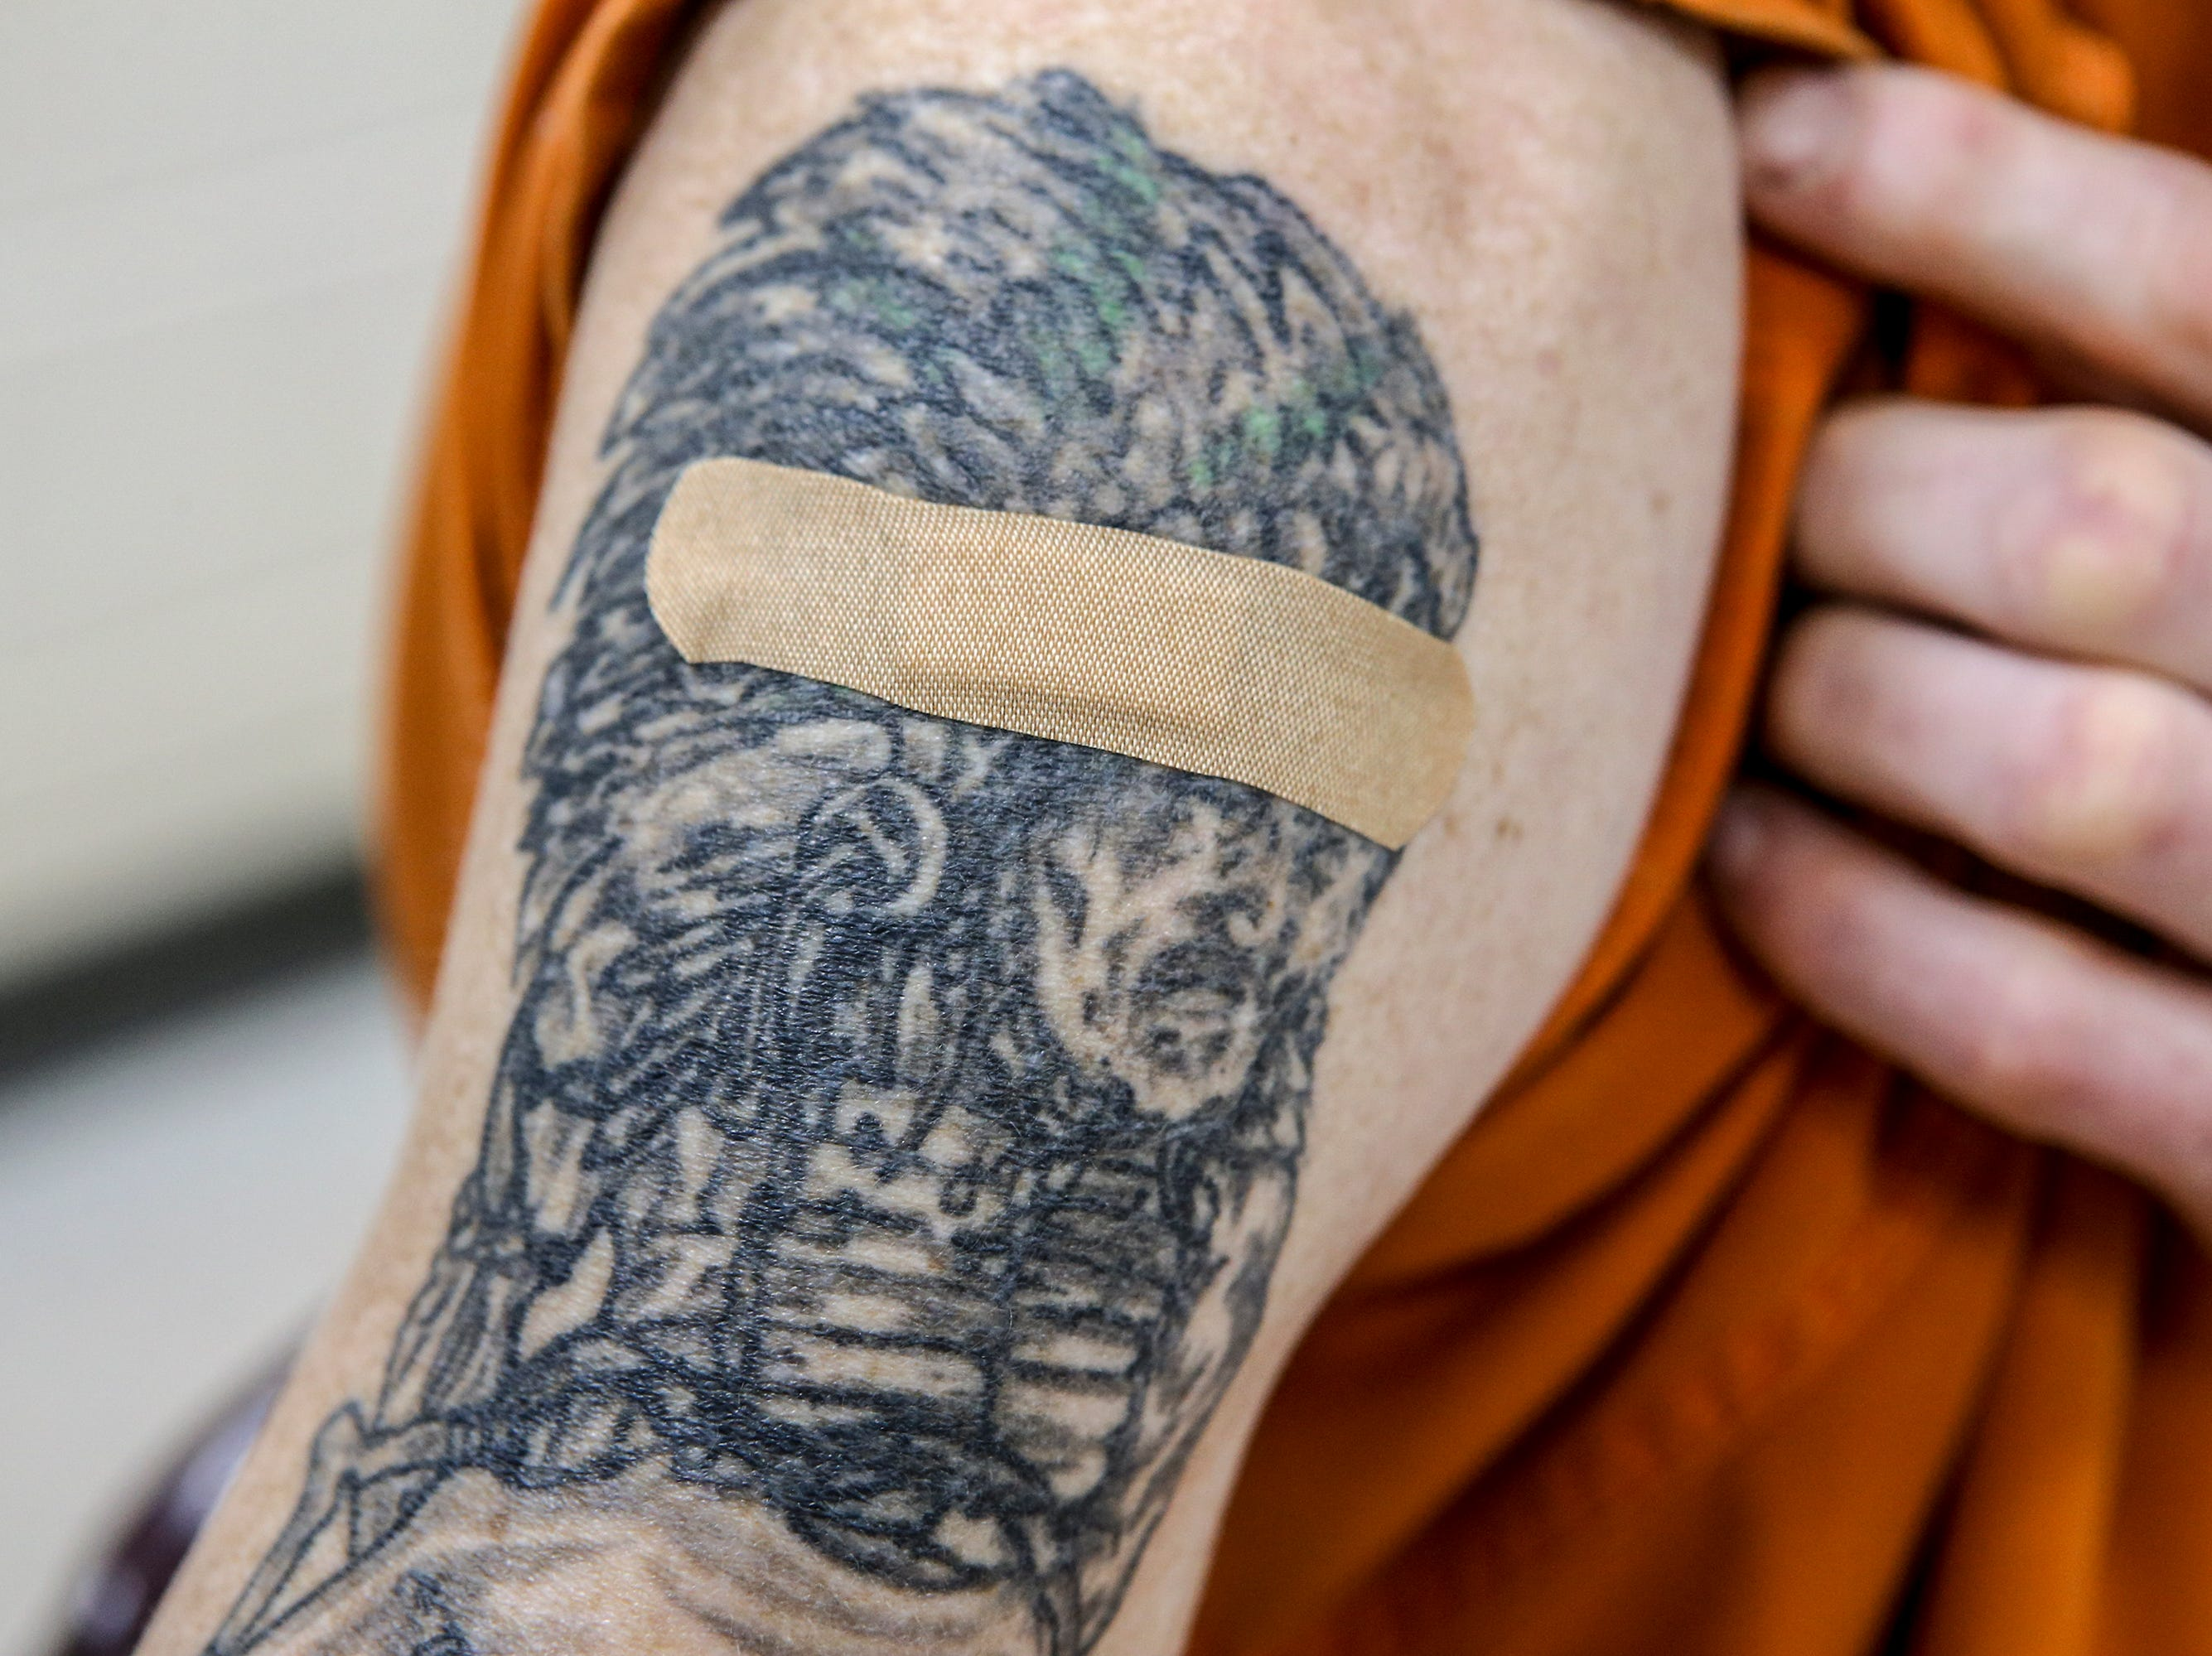 A bandage is placed over the spot where a vaccination against hepatitis A was given to an inmate a the Pulaski County Detention Center by Sharon Wesley.